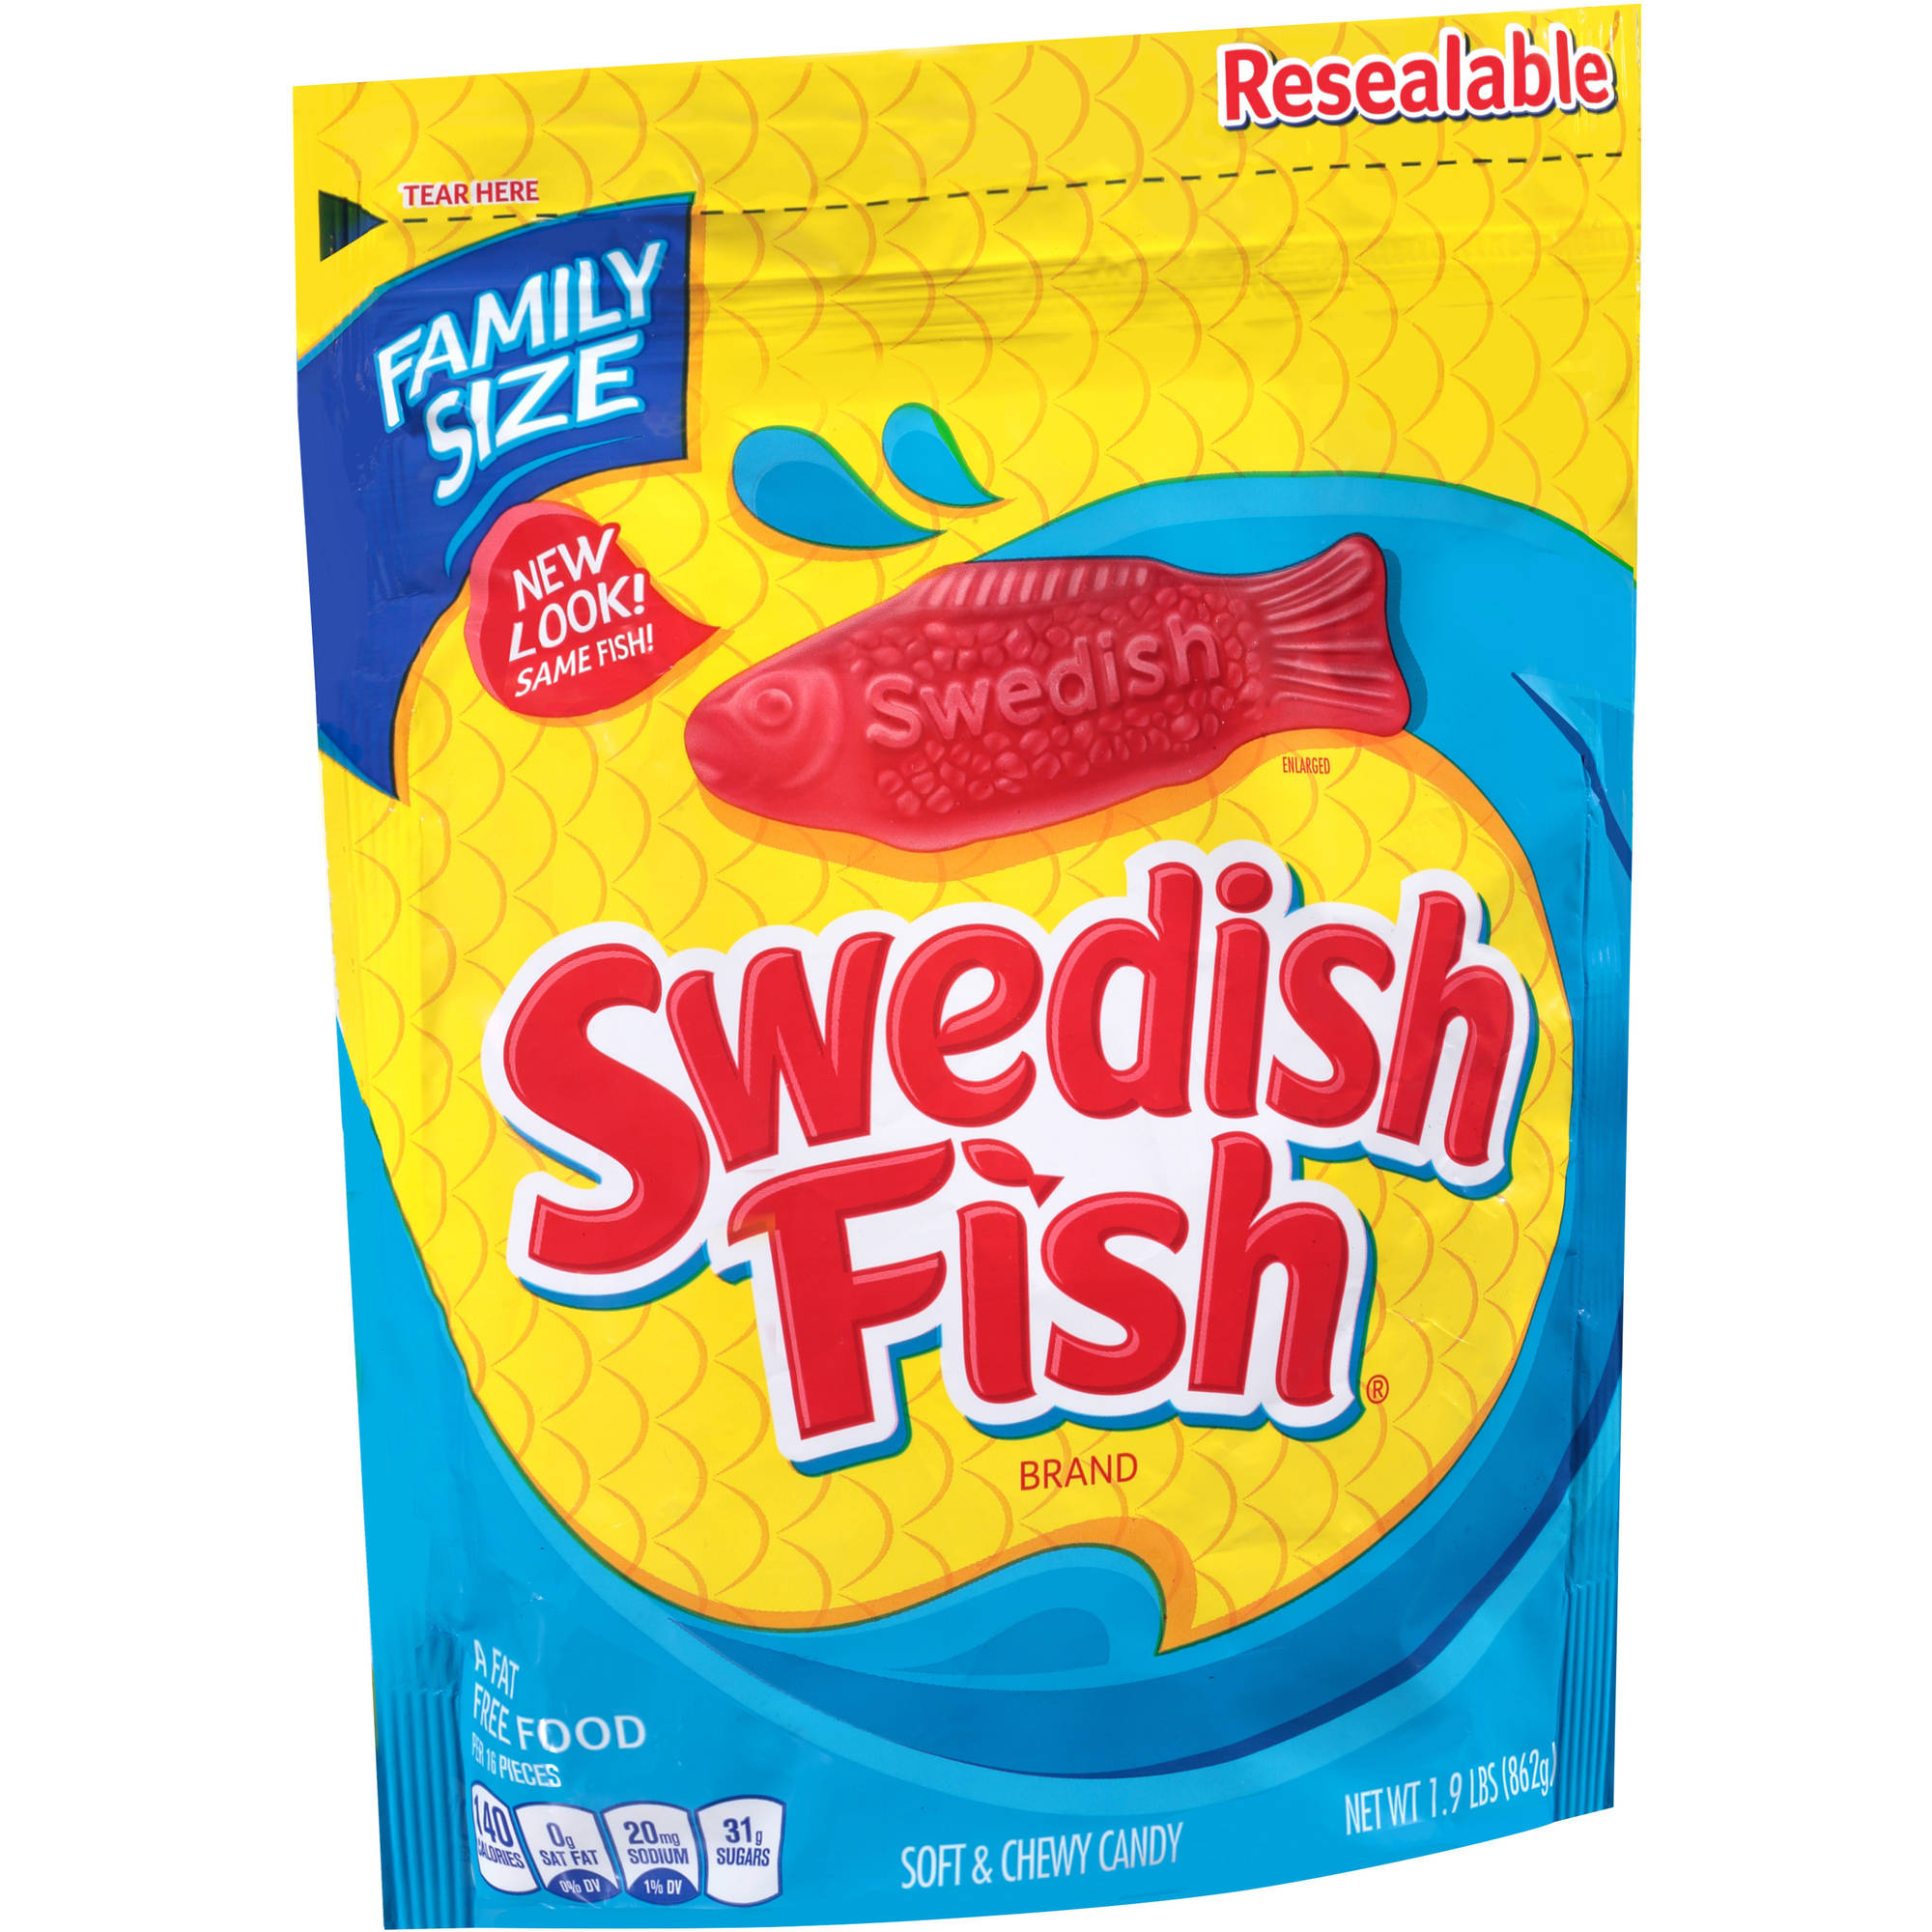 Swedish Fish Soft & Chewy Candy, 1.9 lbs